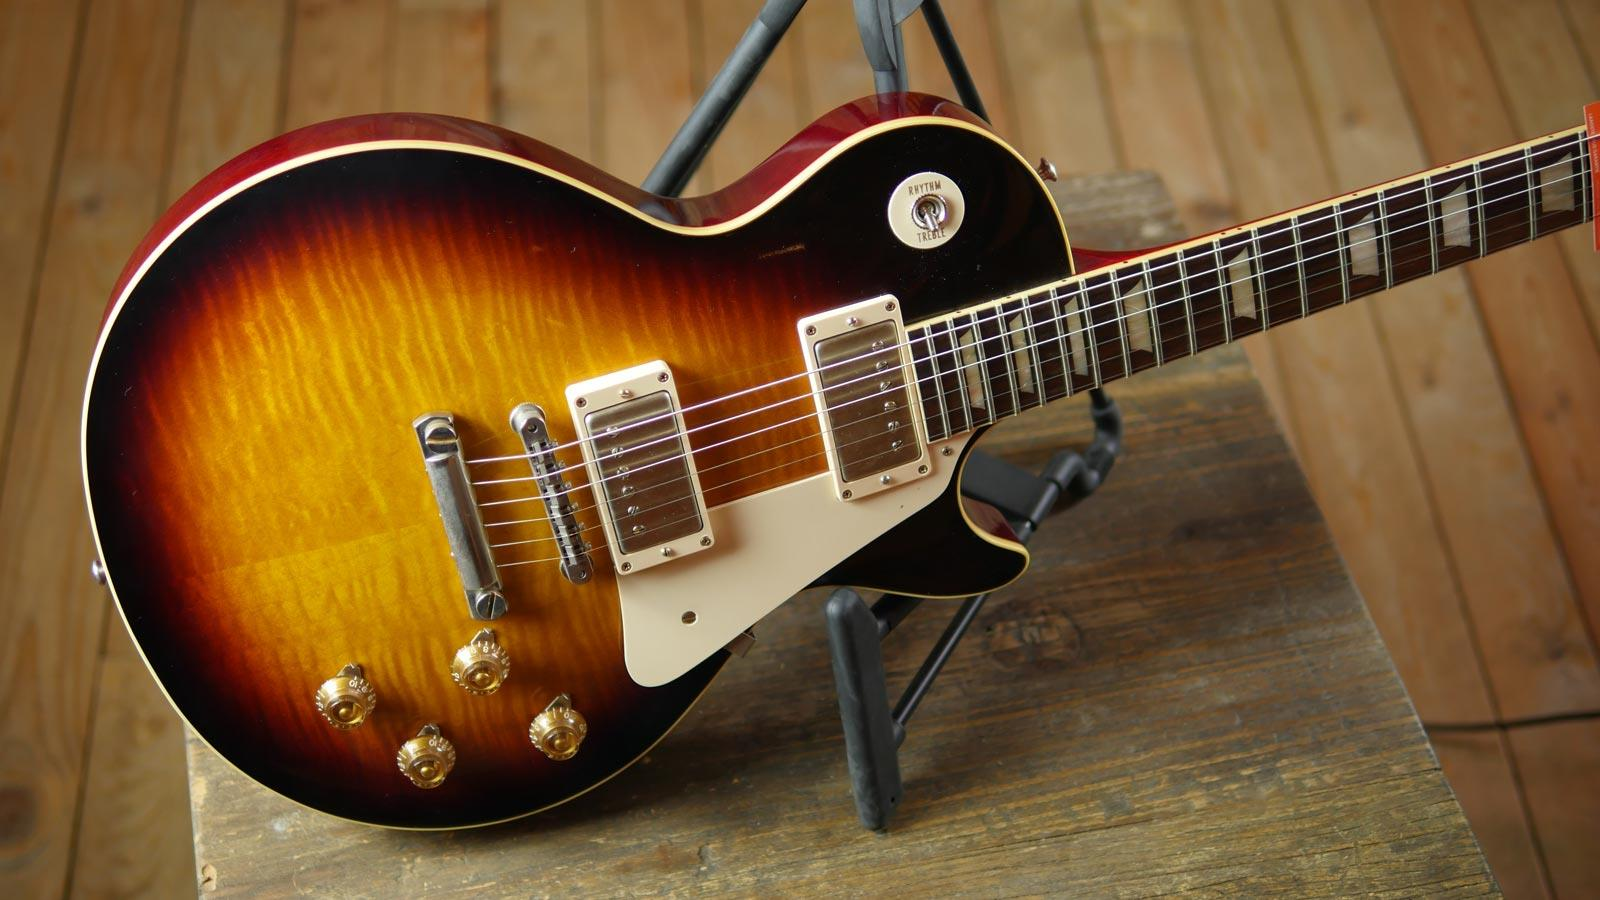 gibson custom shop 1959 les paul reissue vos faded tobacco keymusic. Black Bedroom Furniture Sets. Home Design Ideas